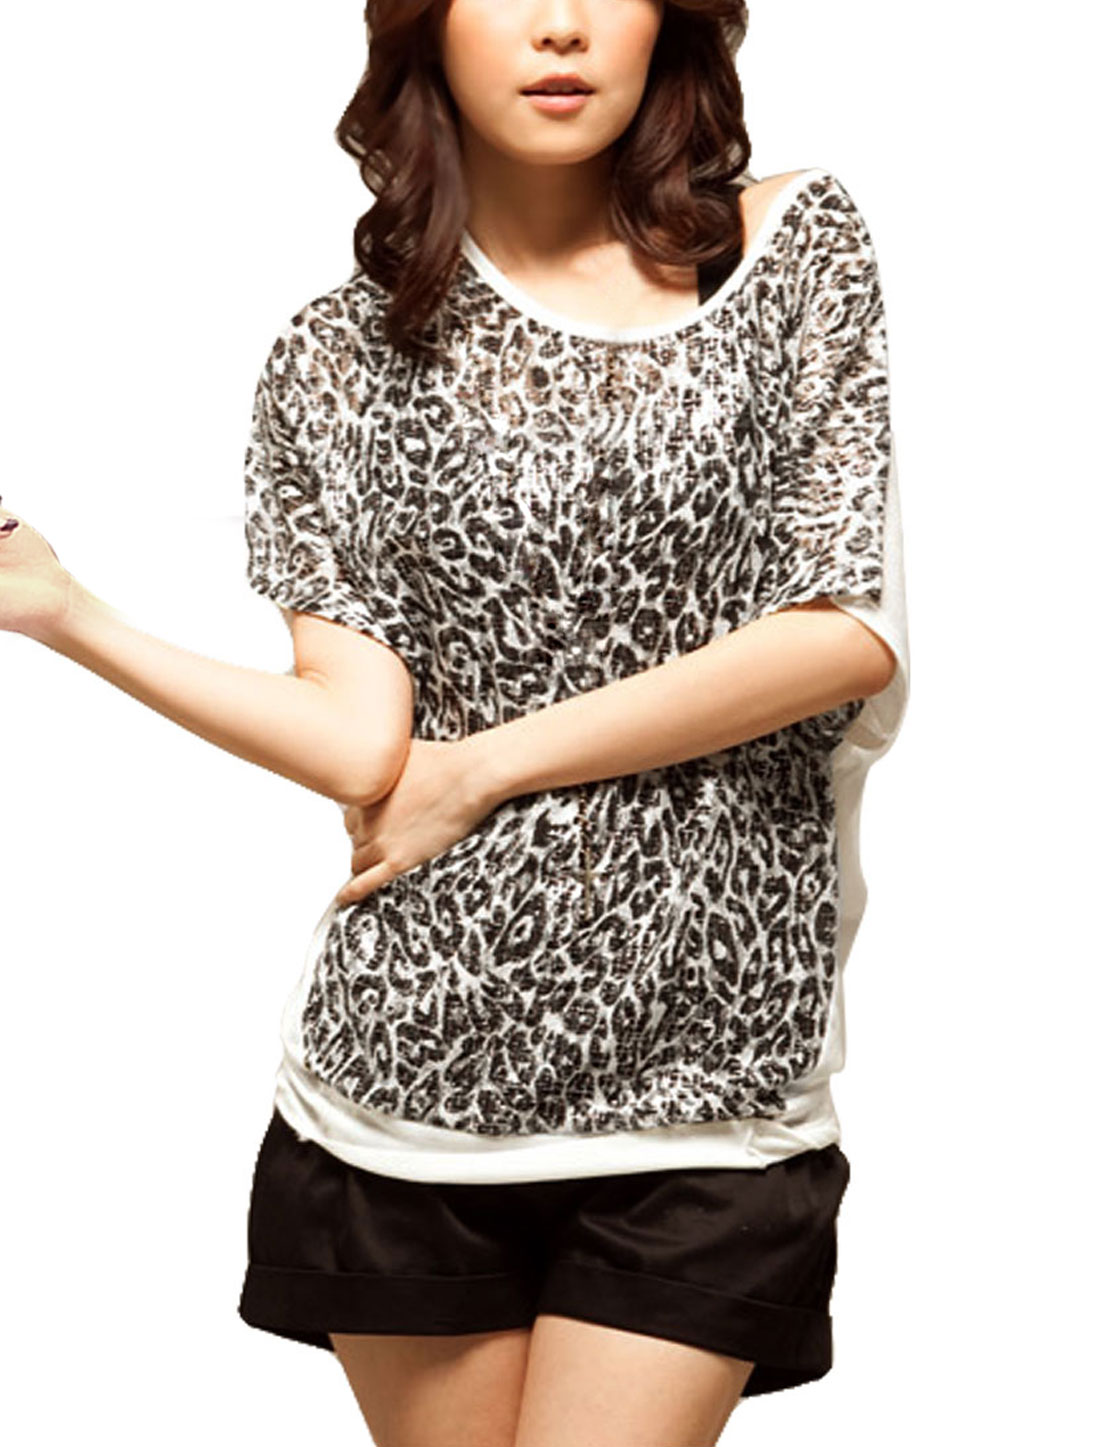 Women Scoop Neck Bat Sleeve Leopard Print Front White Back Shirt S